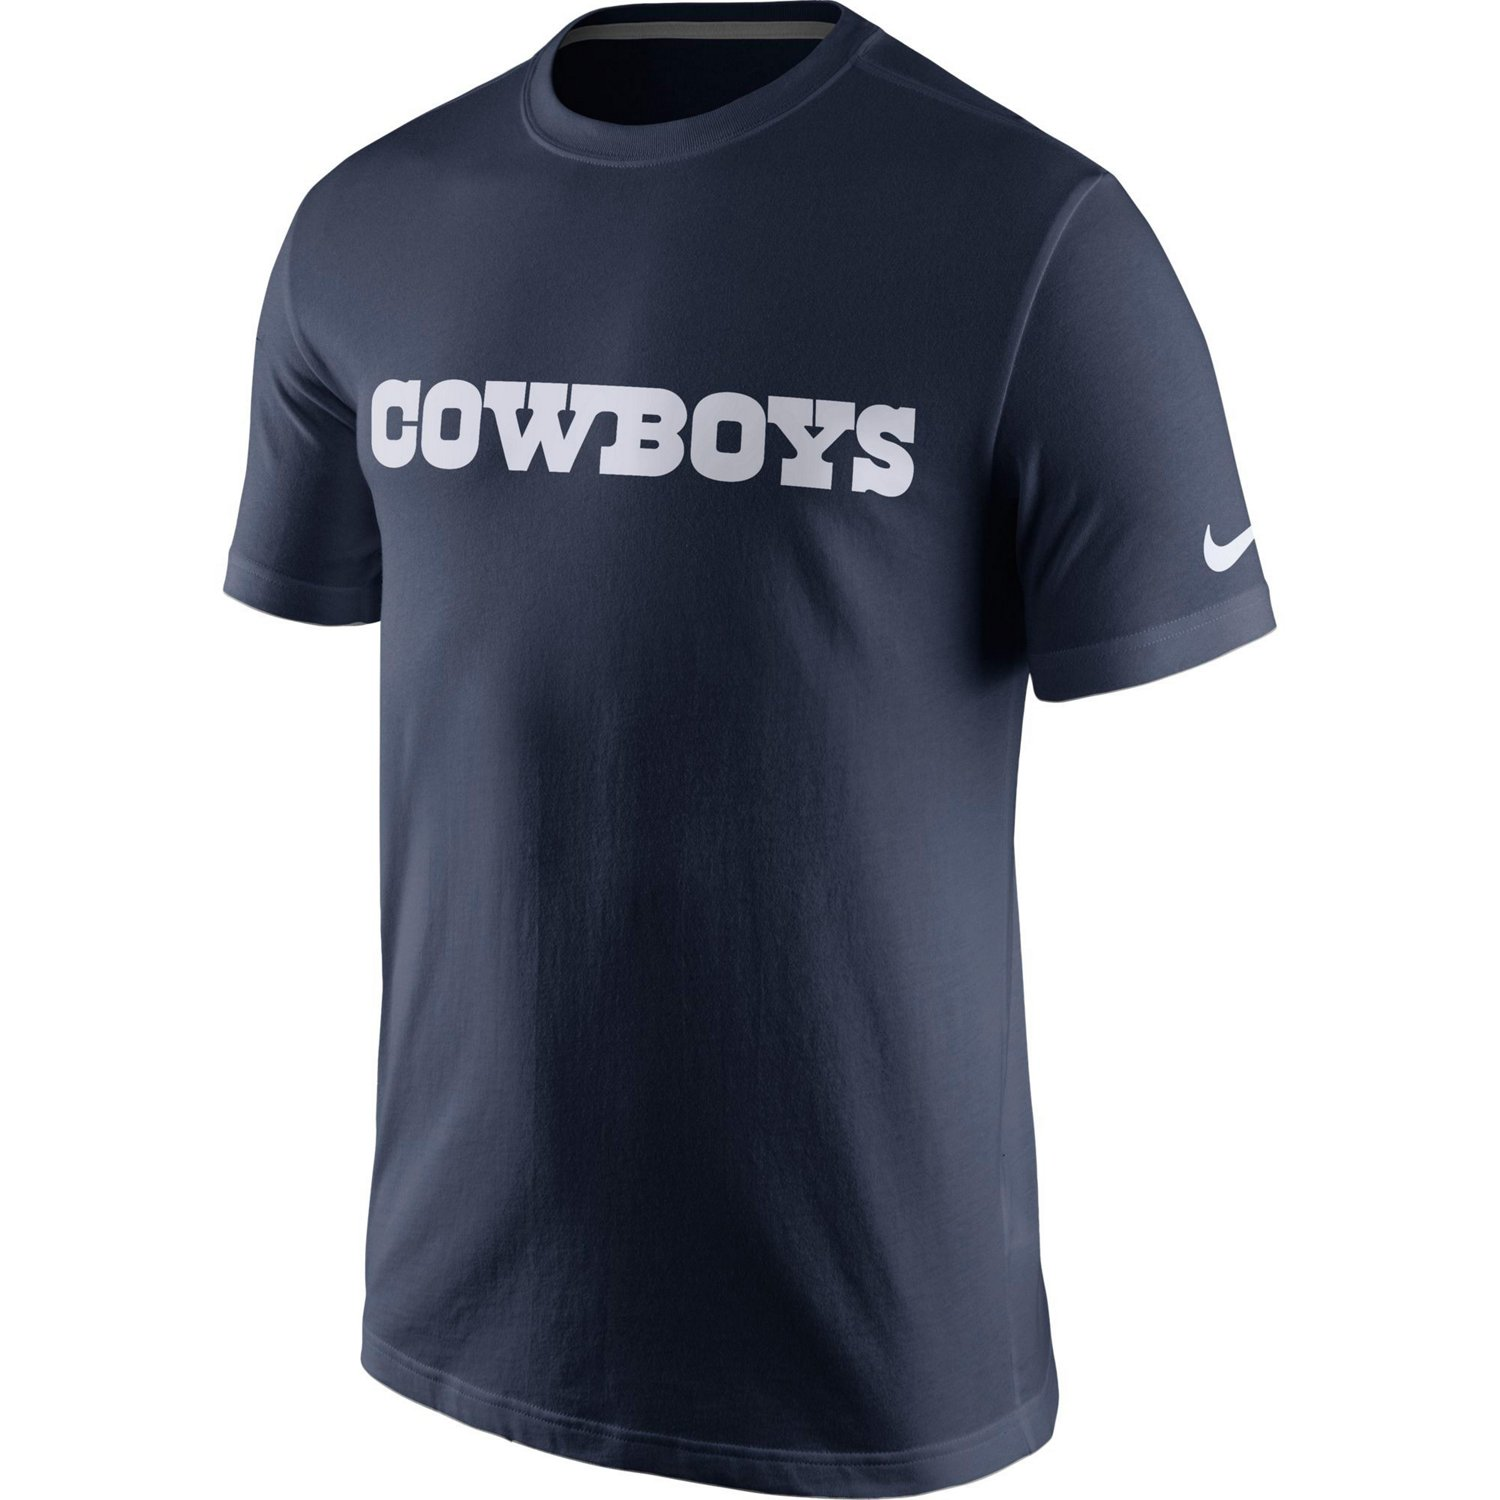 6ec98143a17 Display product reviews for Nike Men's Dallas Cowboys Essential Wordmark T- shirt